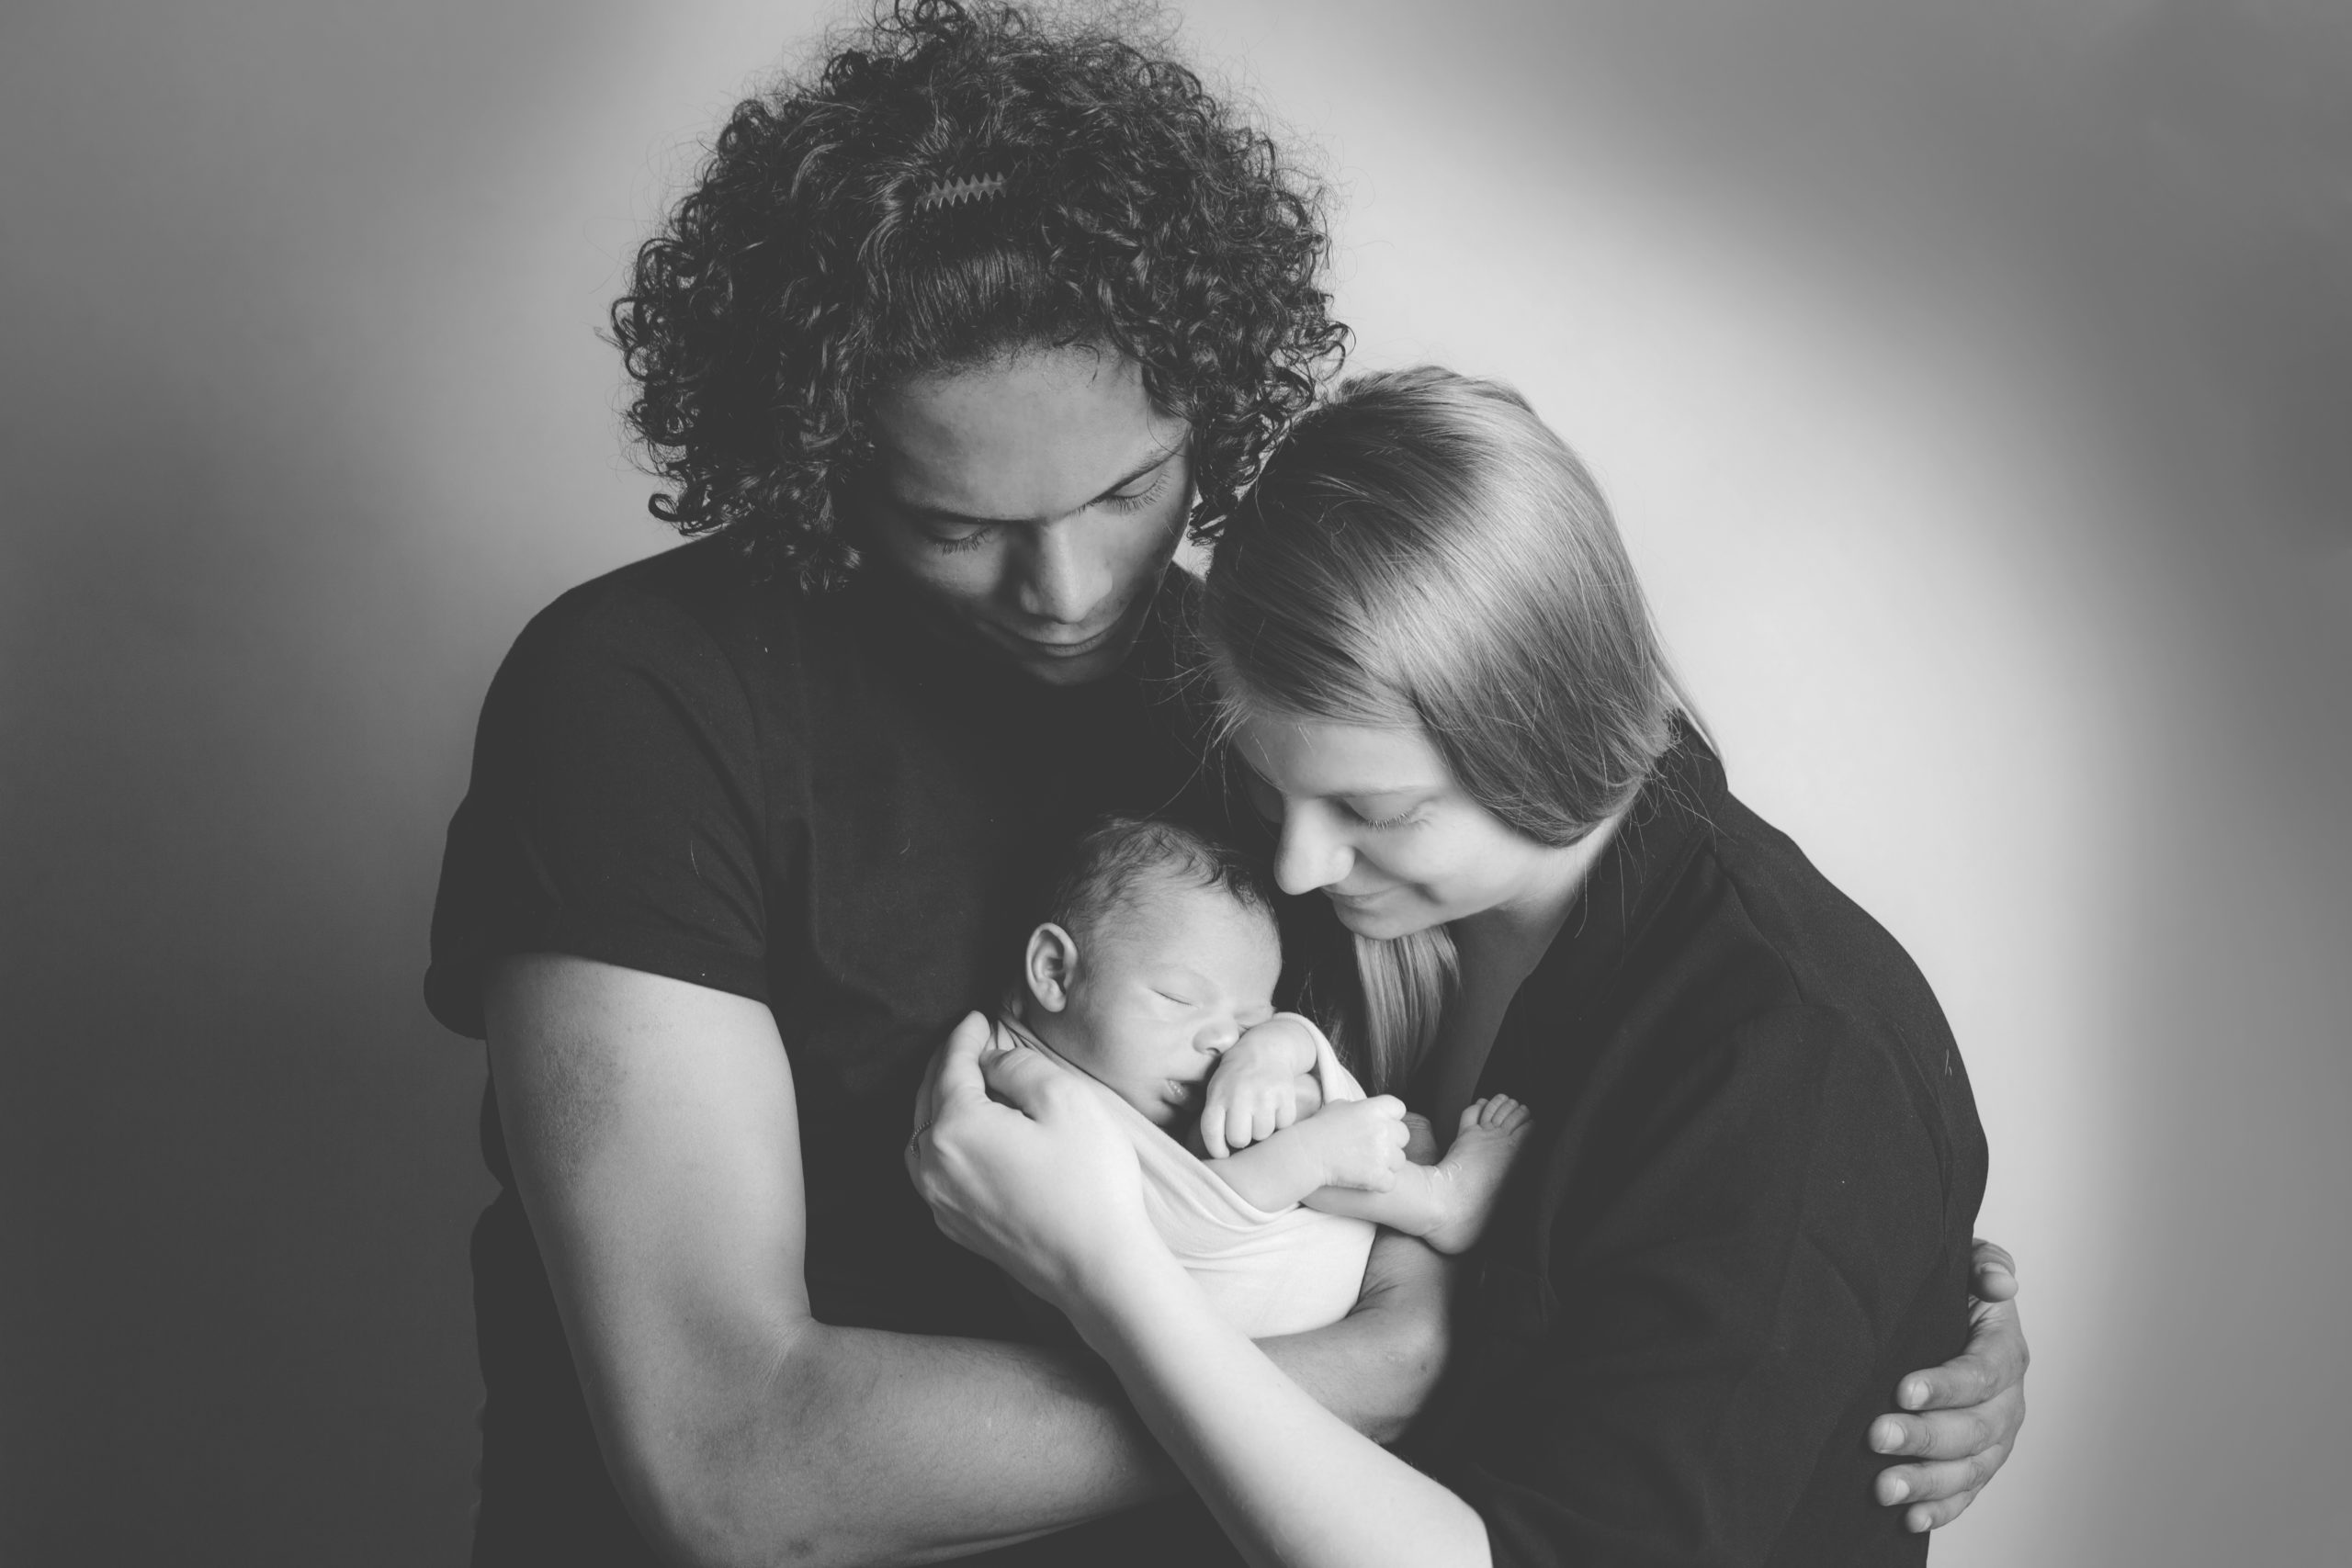 Black and white B&W Family and children photographer in South West London SW19 family portrait photography White mum dark skin dad holding their beautiful baby boy natural colours classic family portrait